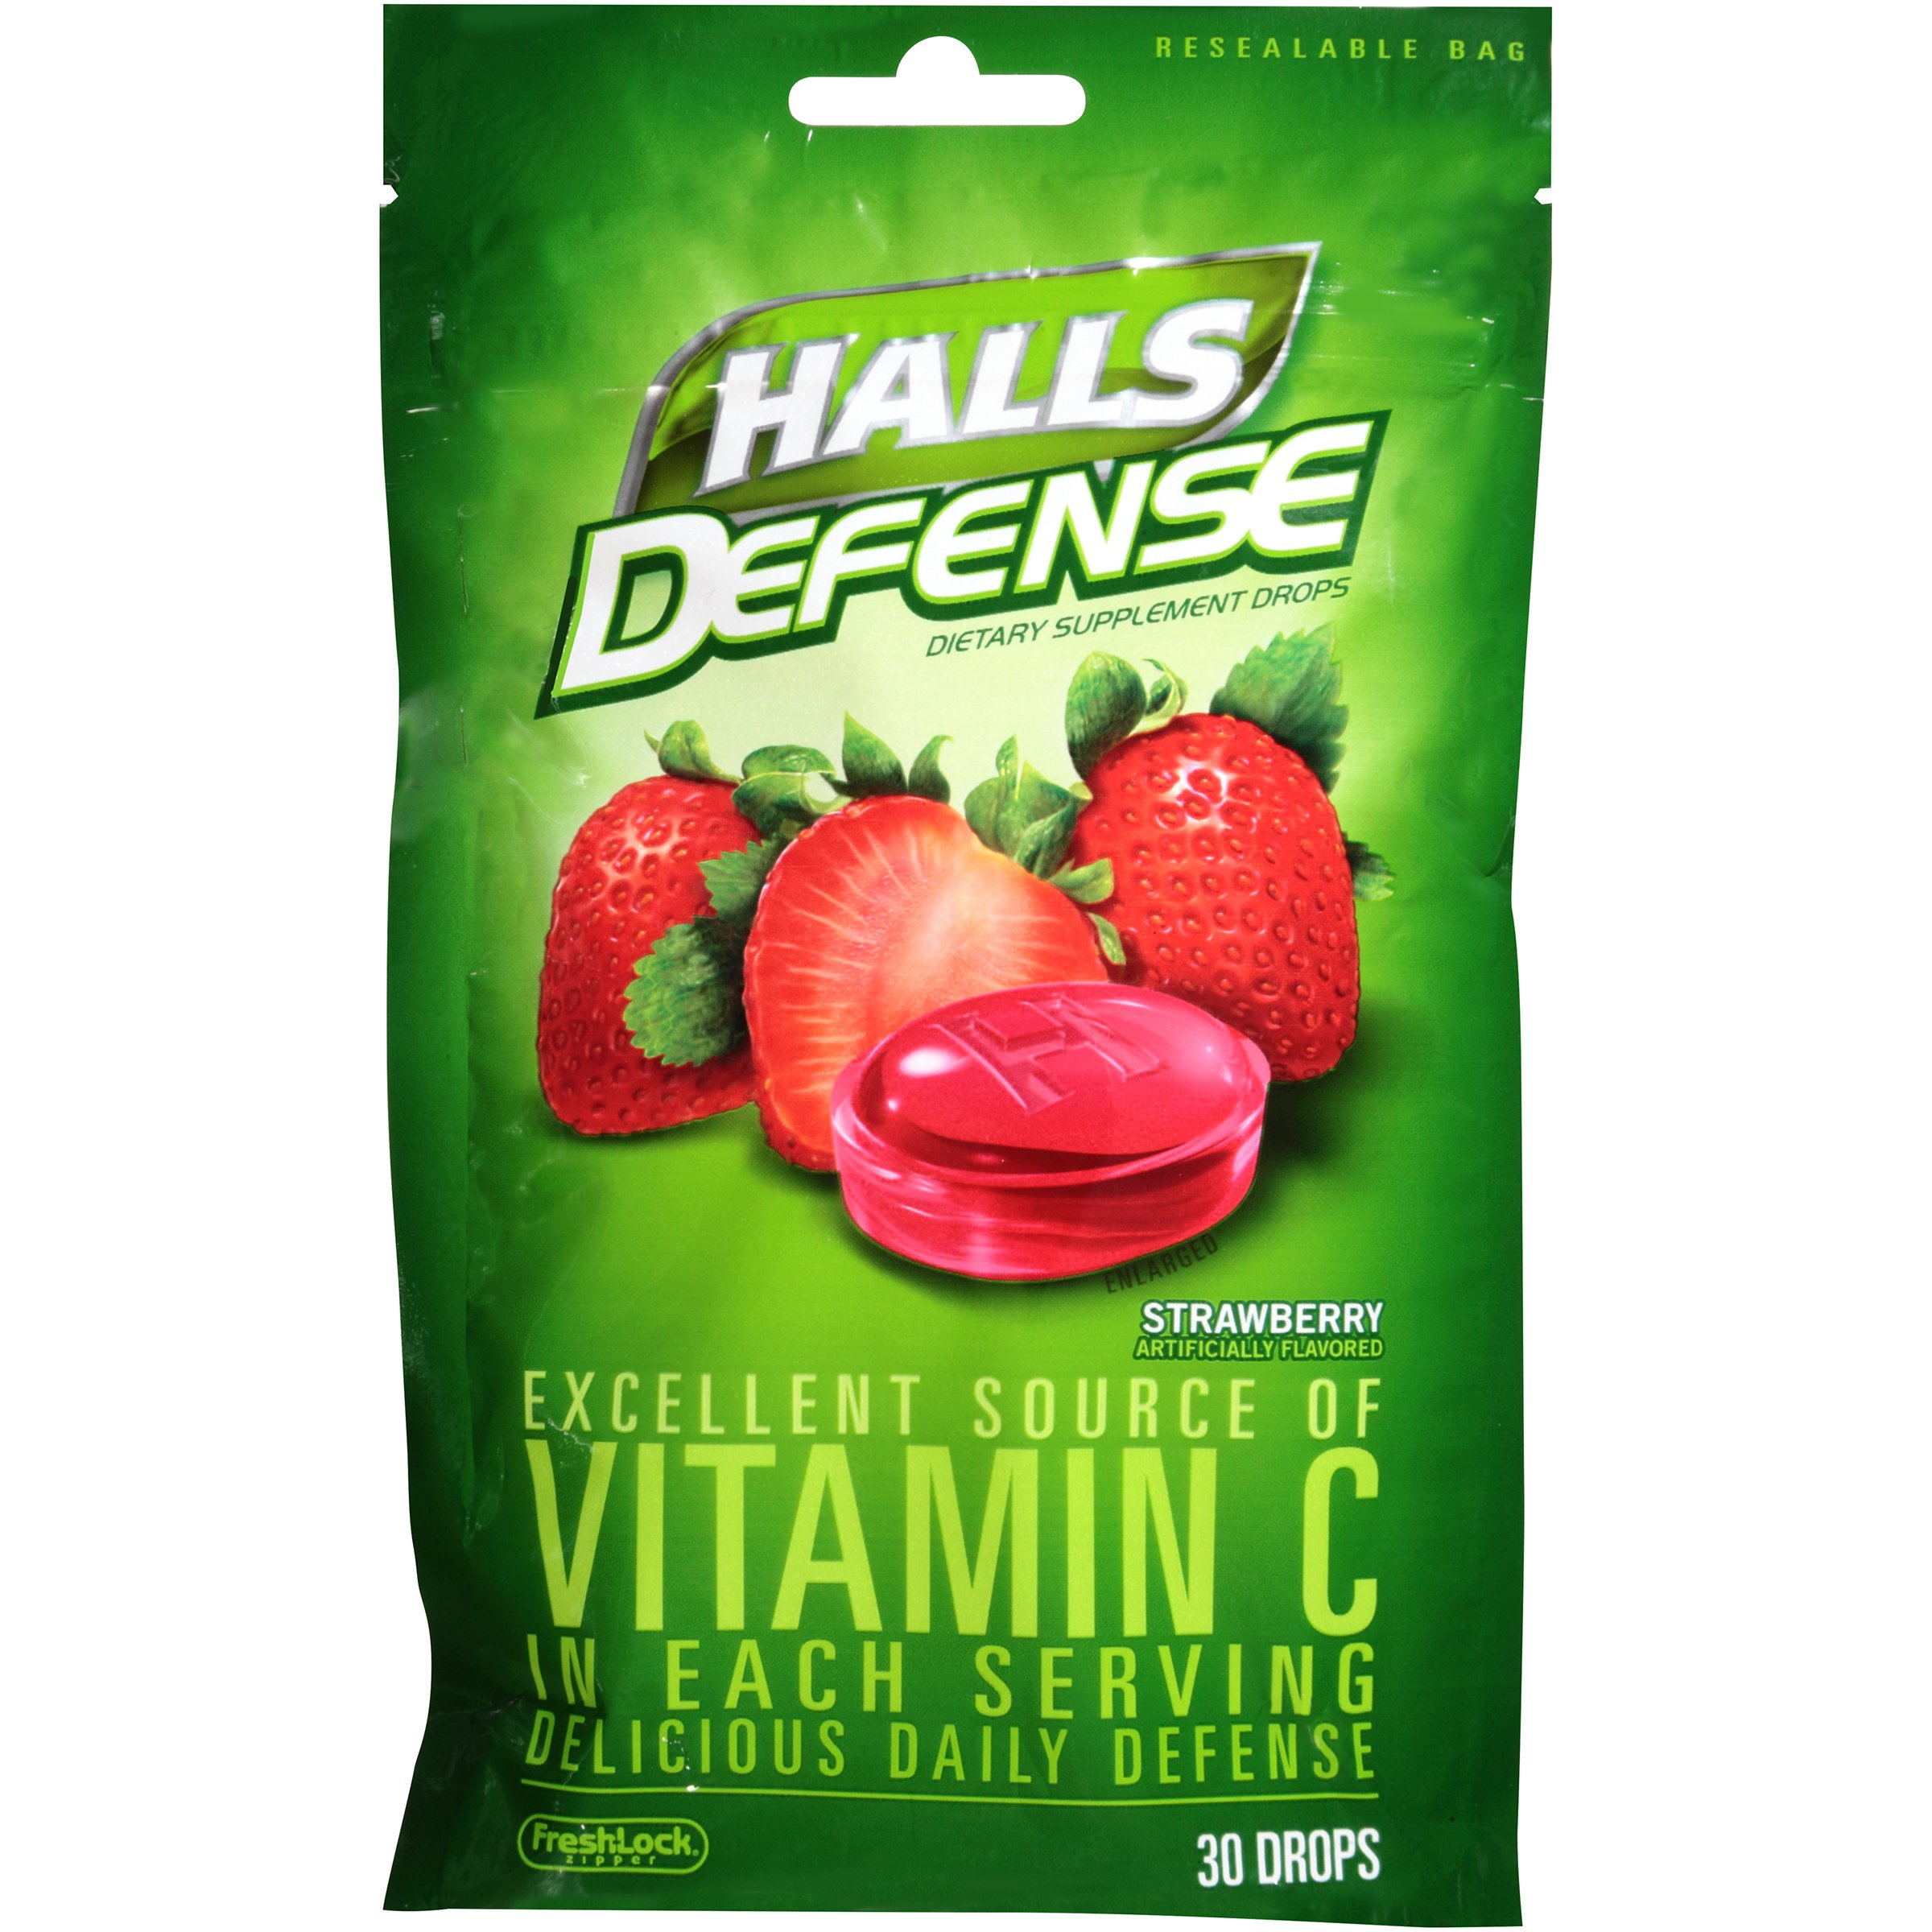 Halls Defense Cough Drops Strawberry 12 packs of 30 pieces (4 count)